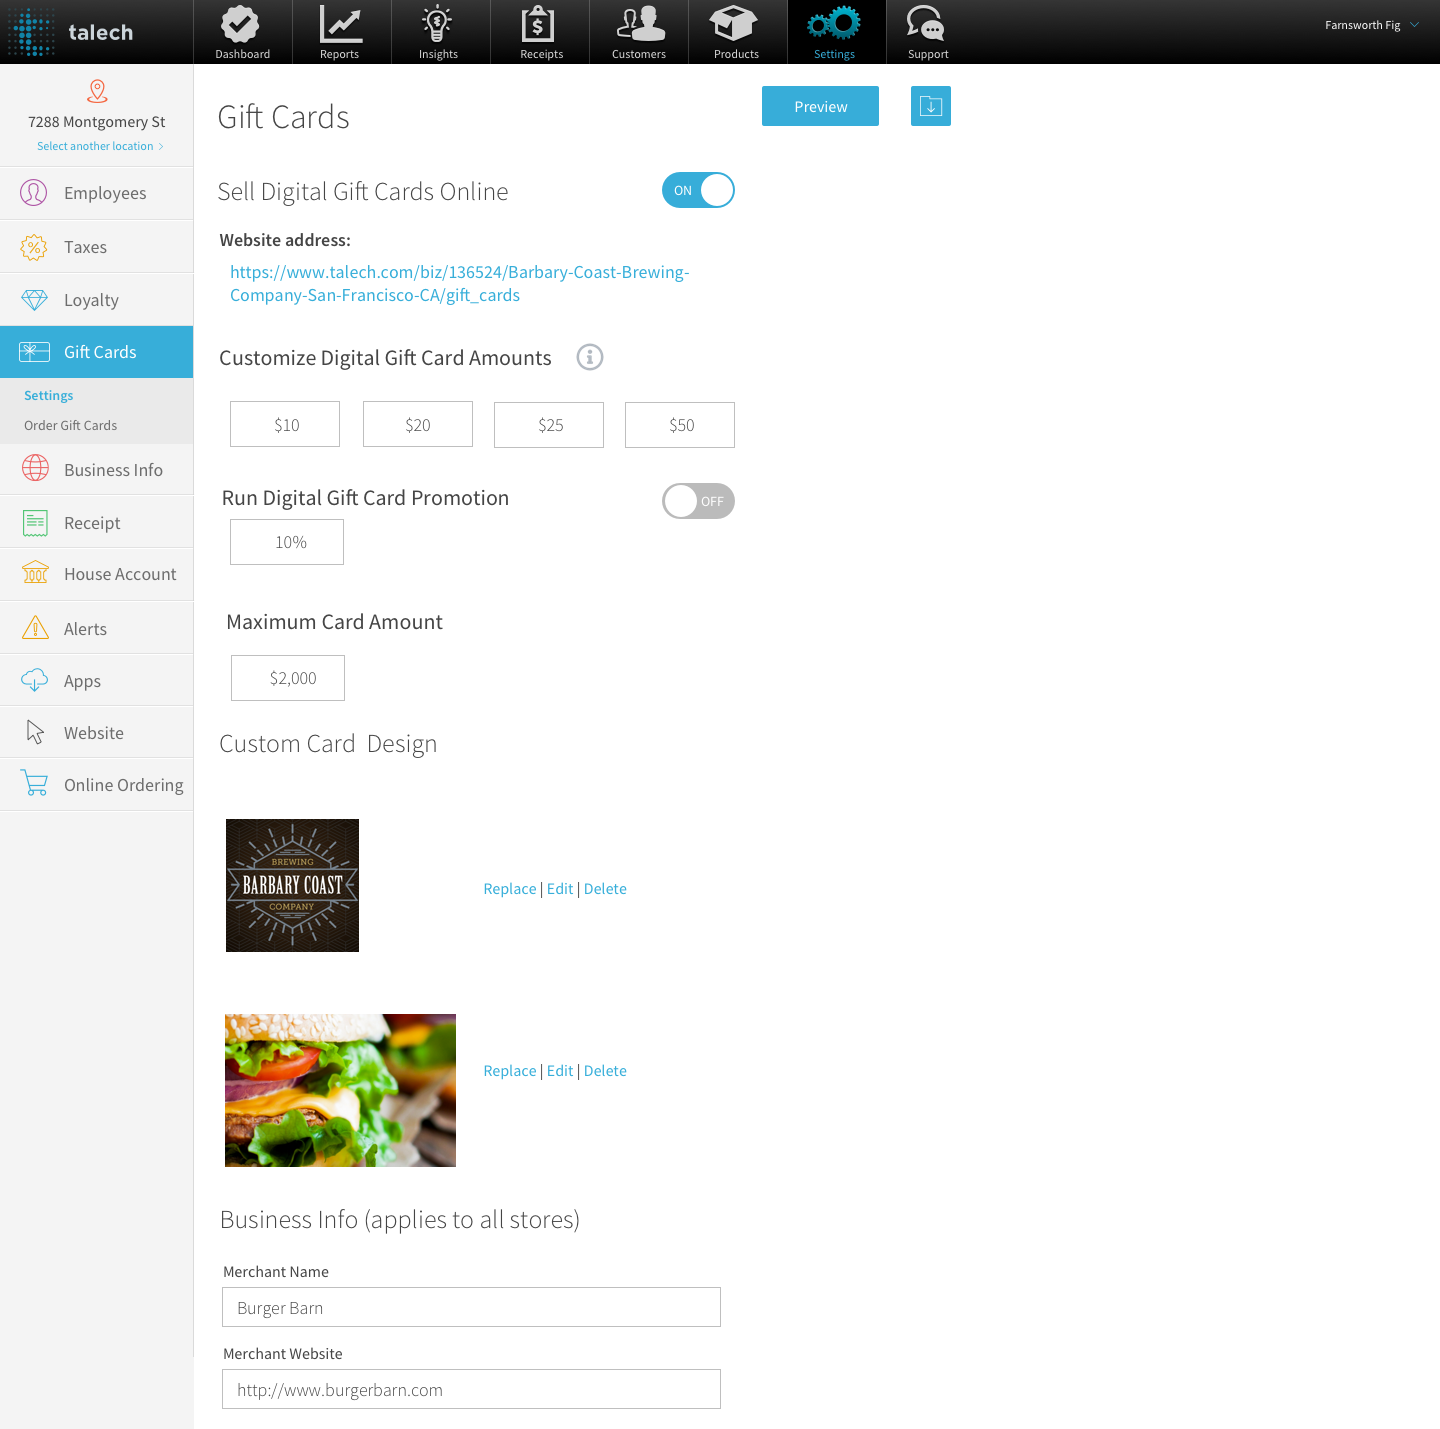 Image of screen showing where to order gift cards within talech